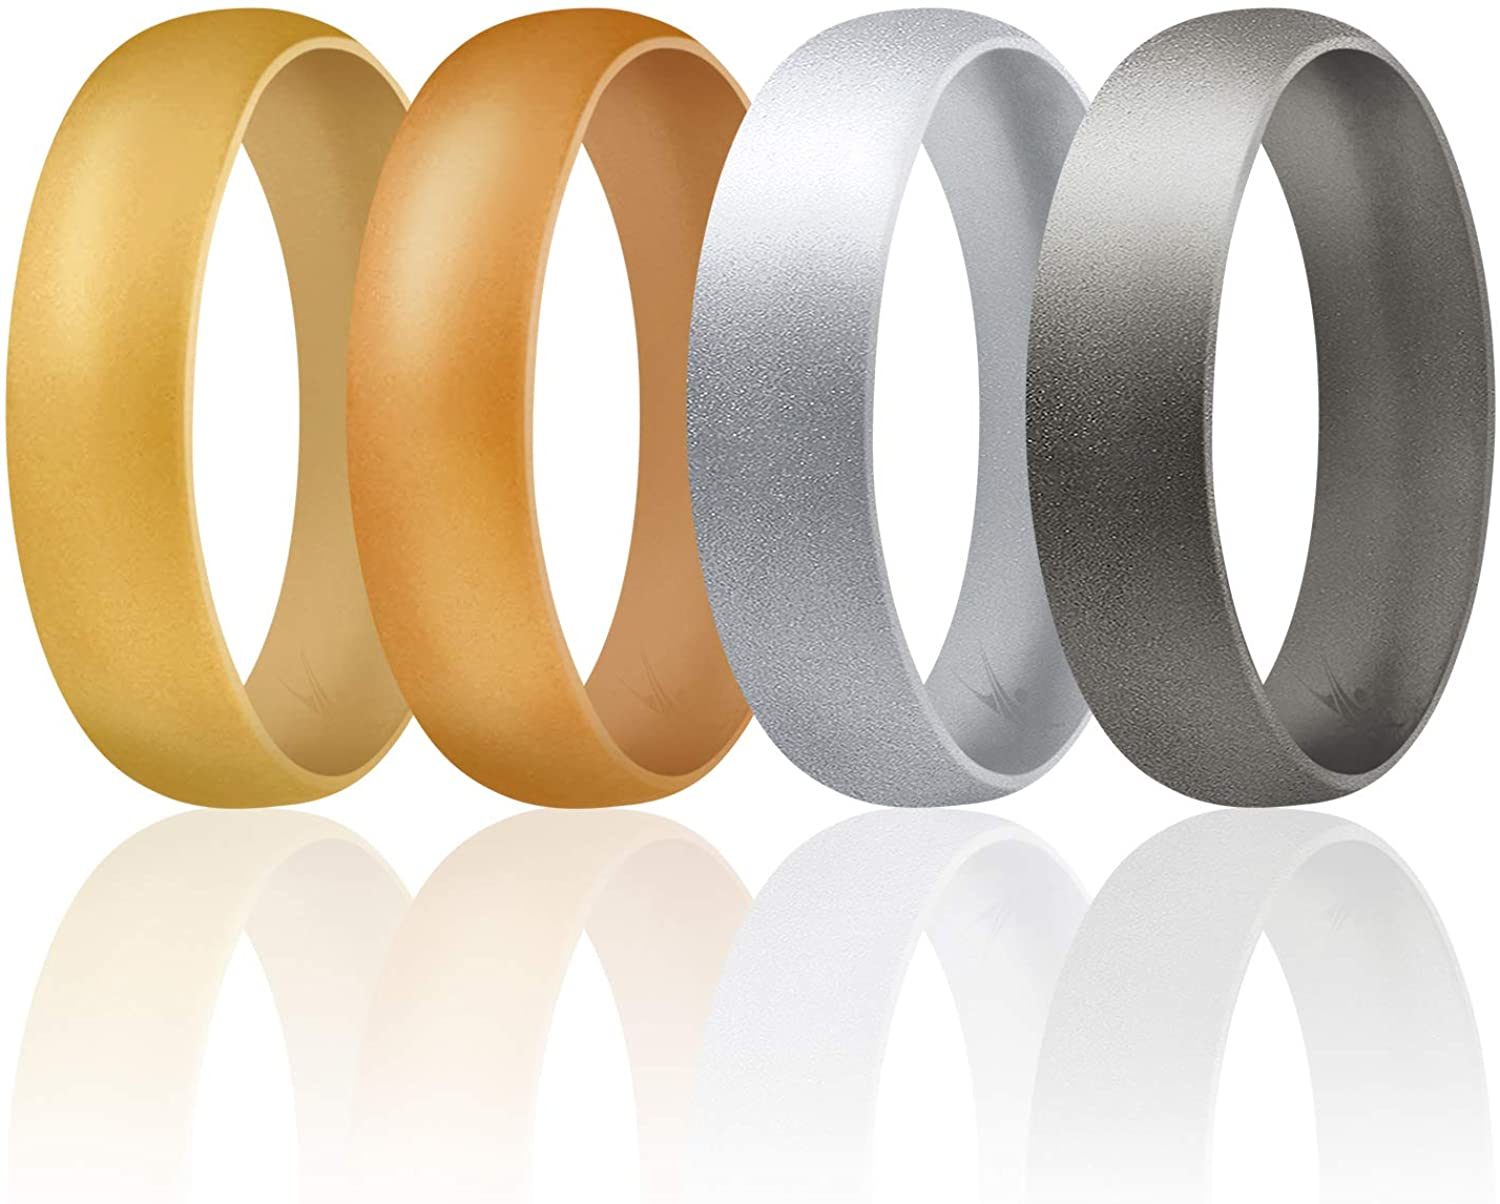 ROQ Silicone Rings for Men and Women Sizes 3.5-16, 6mm Silicone Rubber Wedding Ring Band